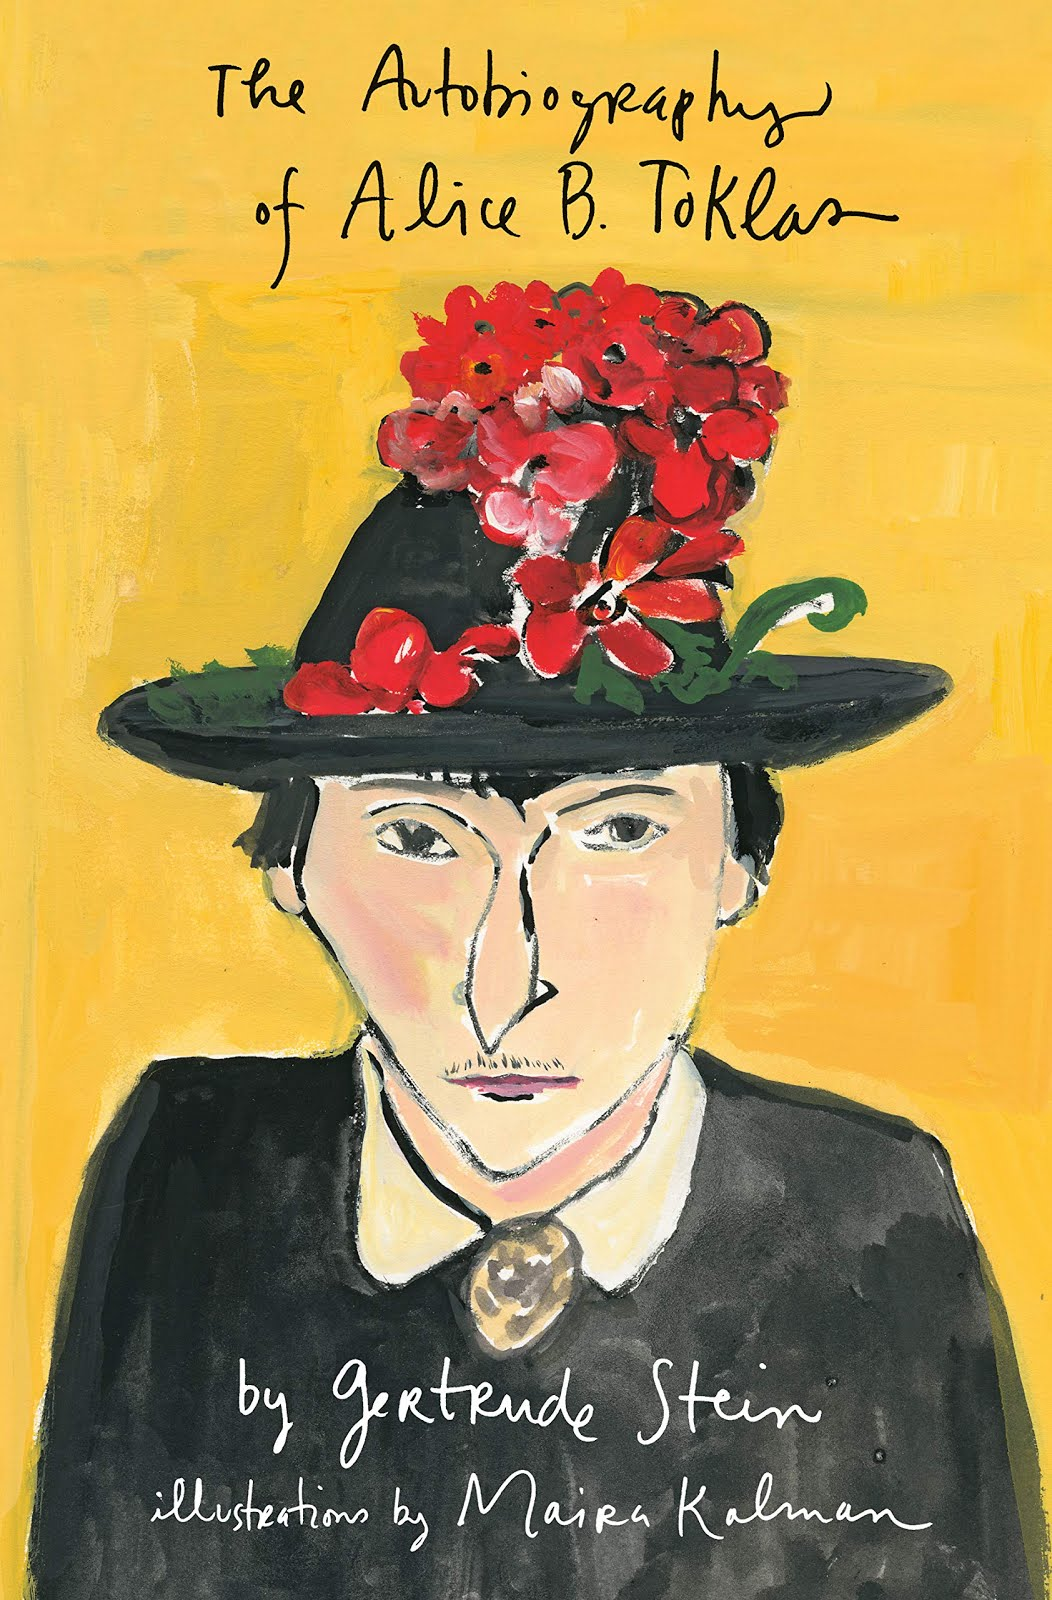 March 9, 2020 7:30 p.m./ Maira Kalman | The Autobiography of Alice B. Toklas Illustrated